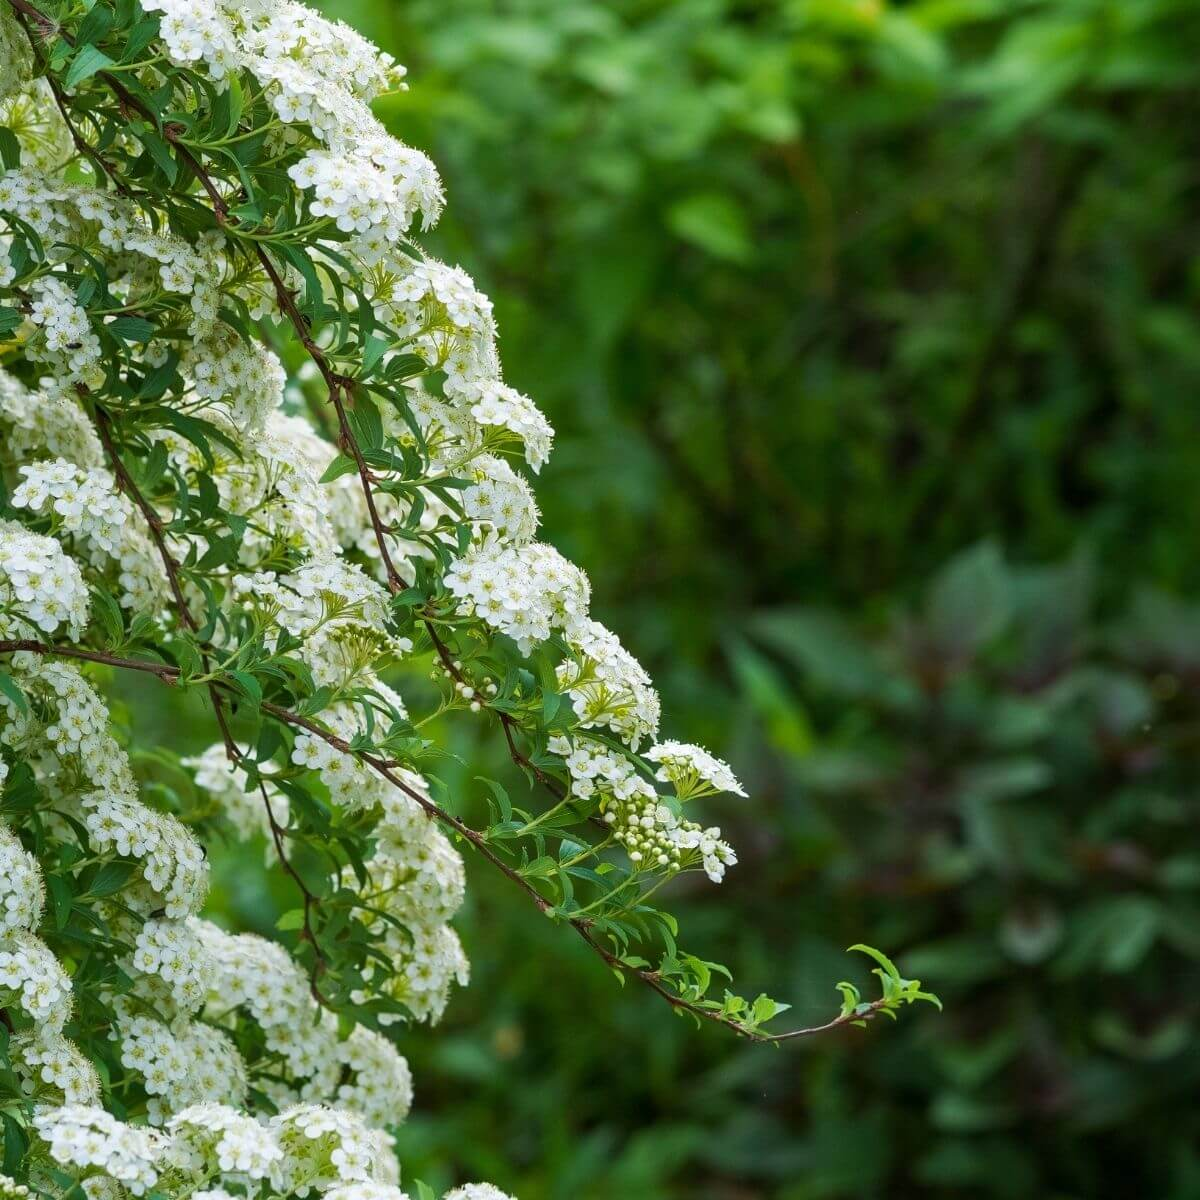 Meadowsweet flowering branches.